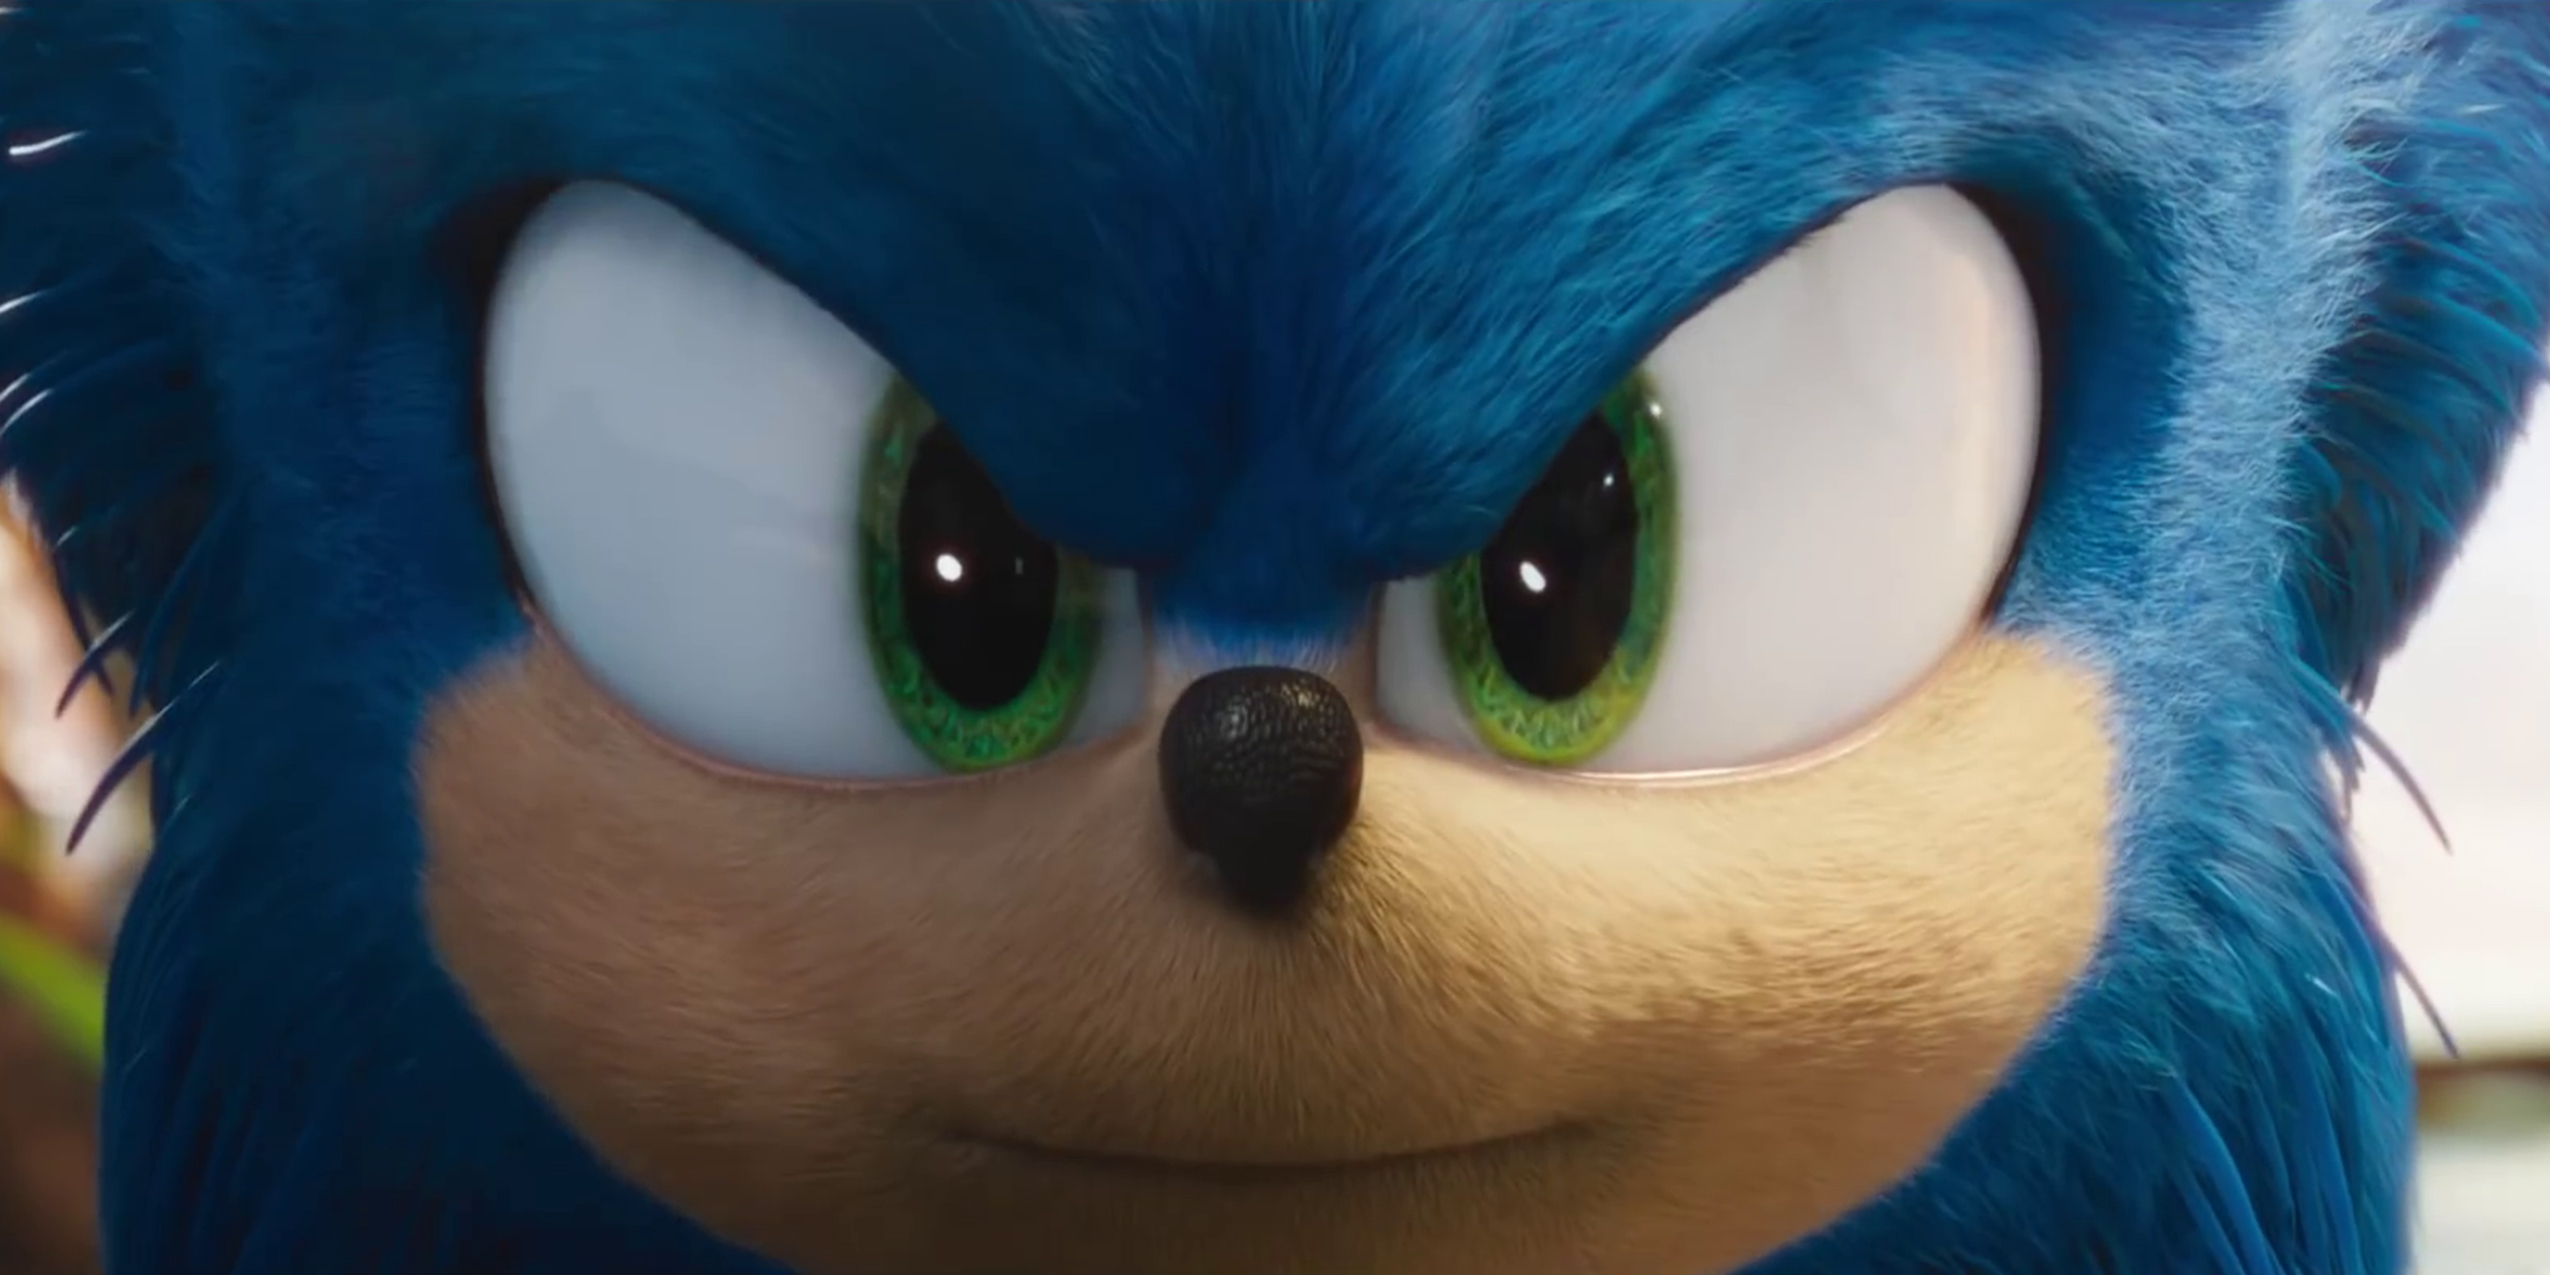 watch sonic the hedgehog movie